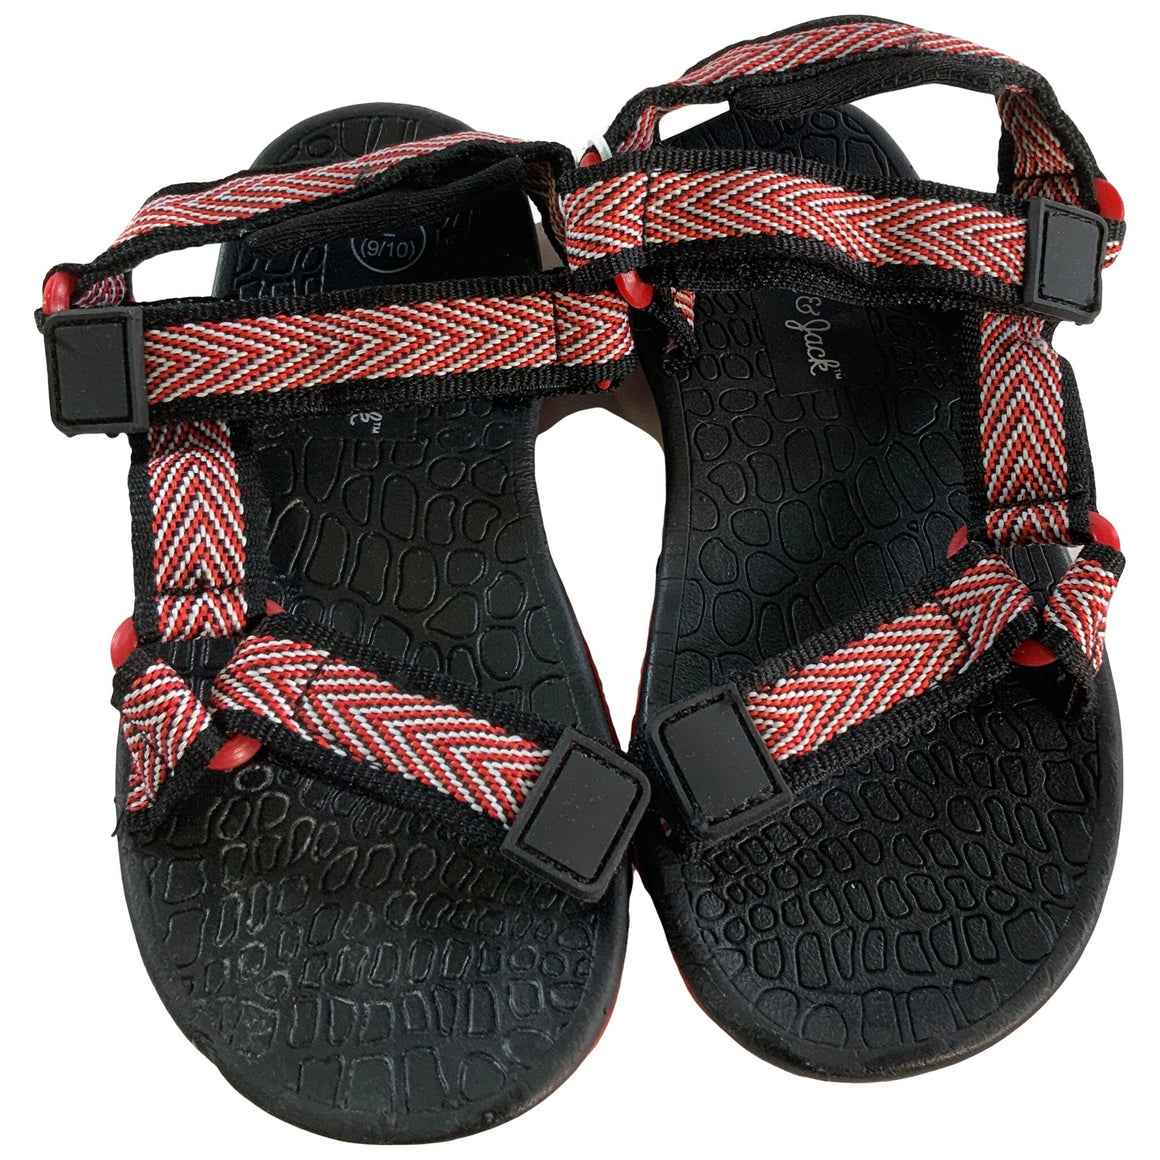 Toddler Boys' Teddy Hiking Sandals - Red L - Cat & Jack™